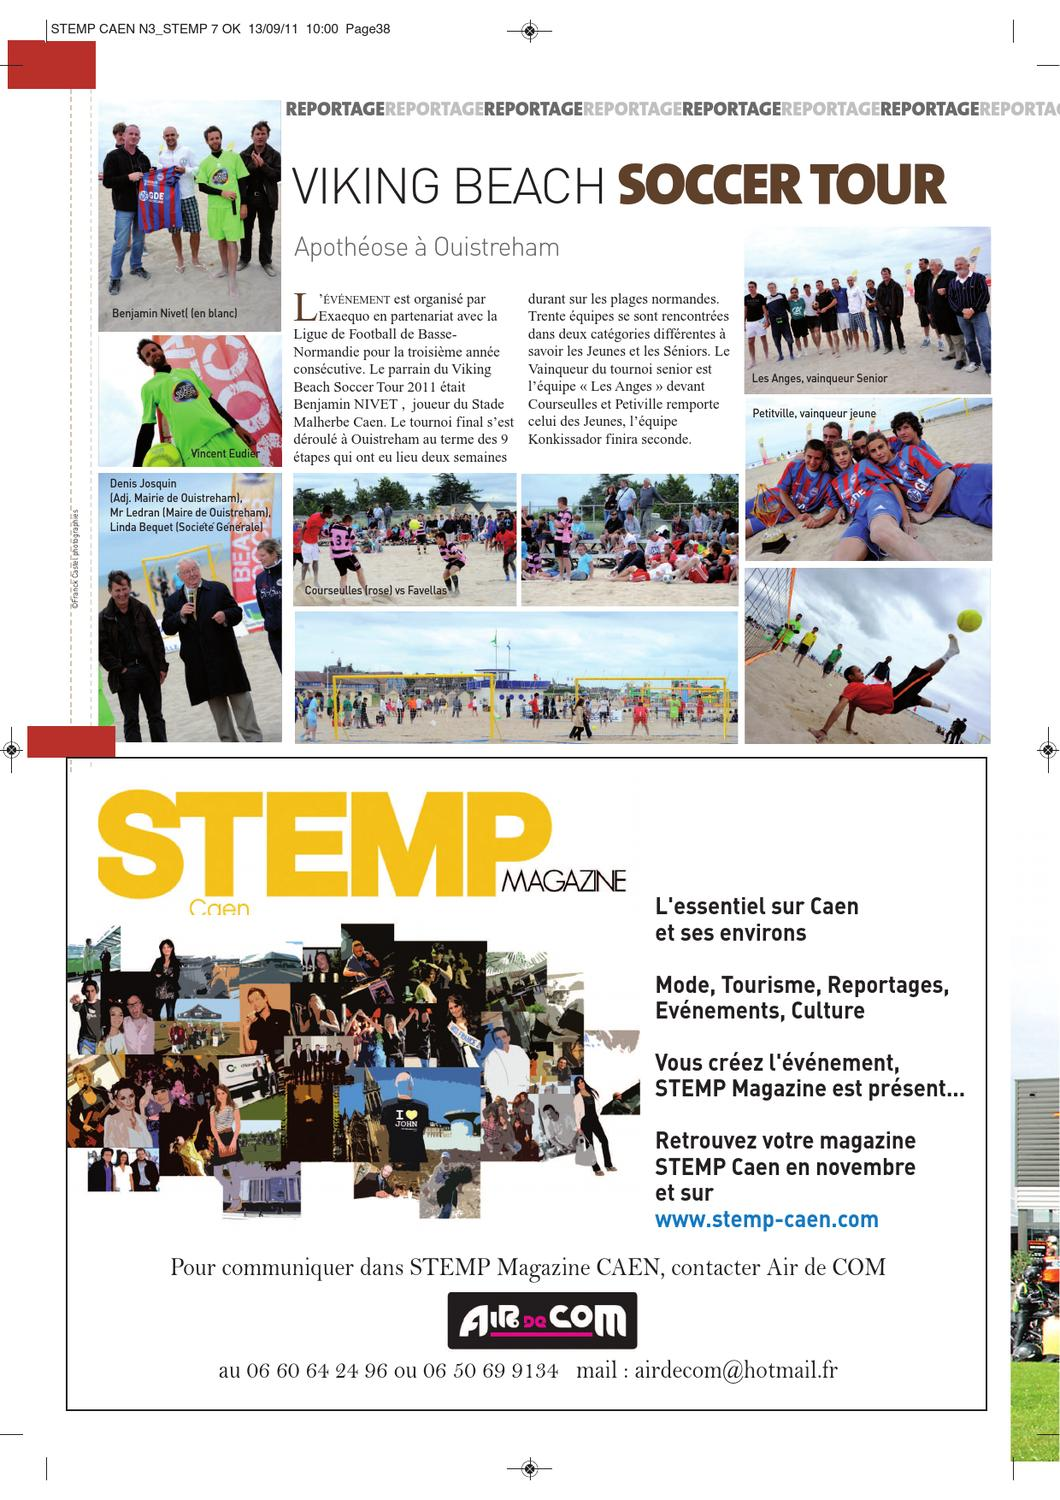 Societe Generale Caen 3 Stemp Magazine Caen By Stemp Magazine Issuu